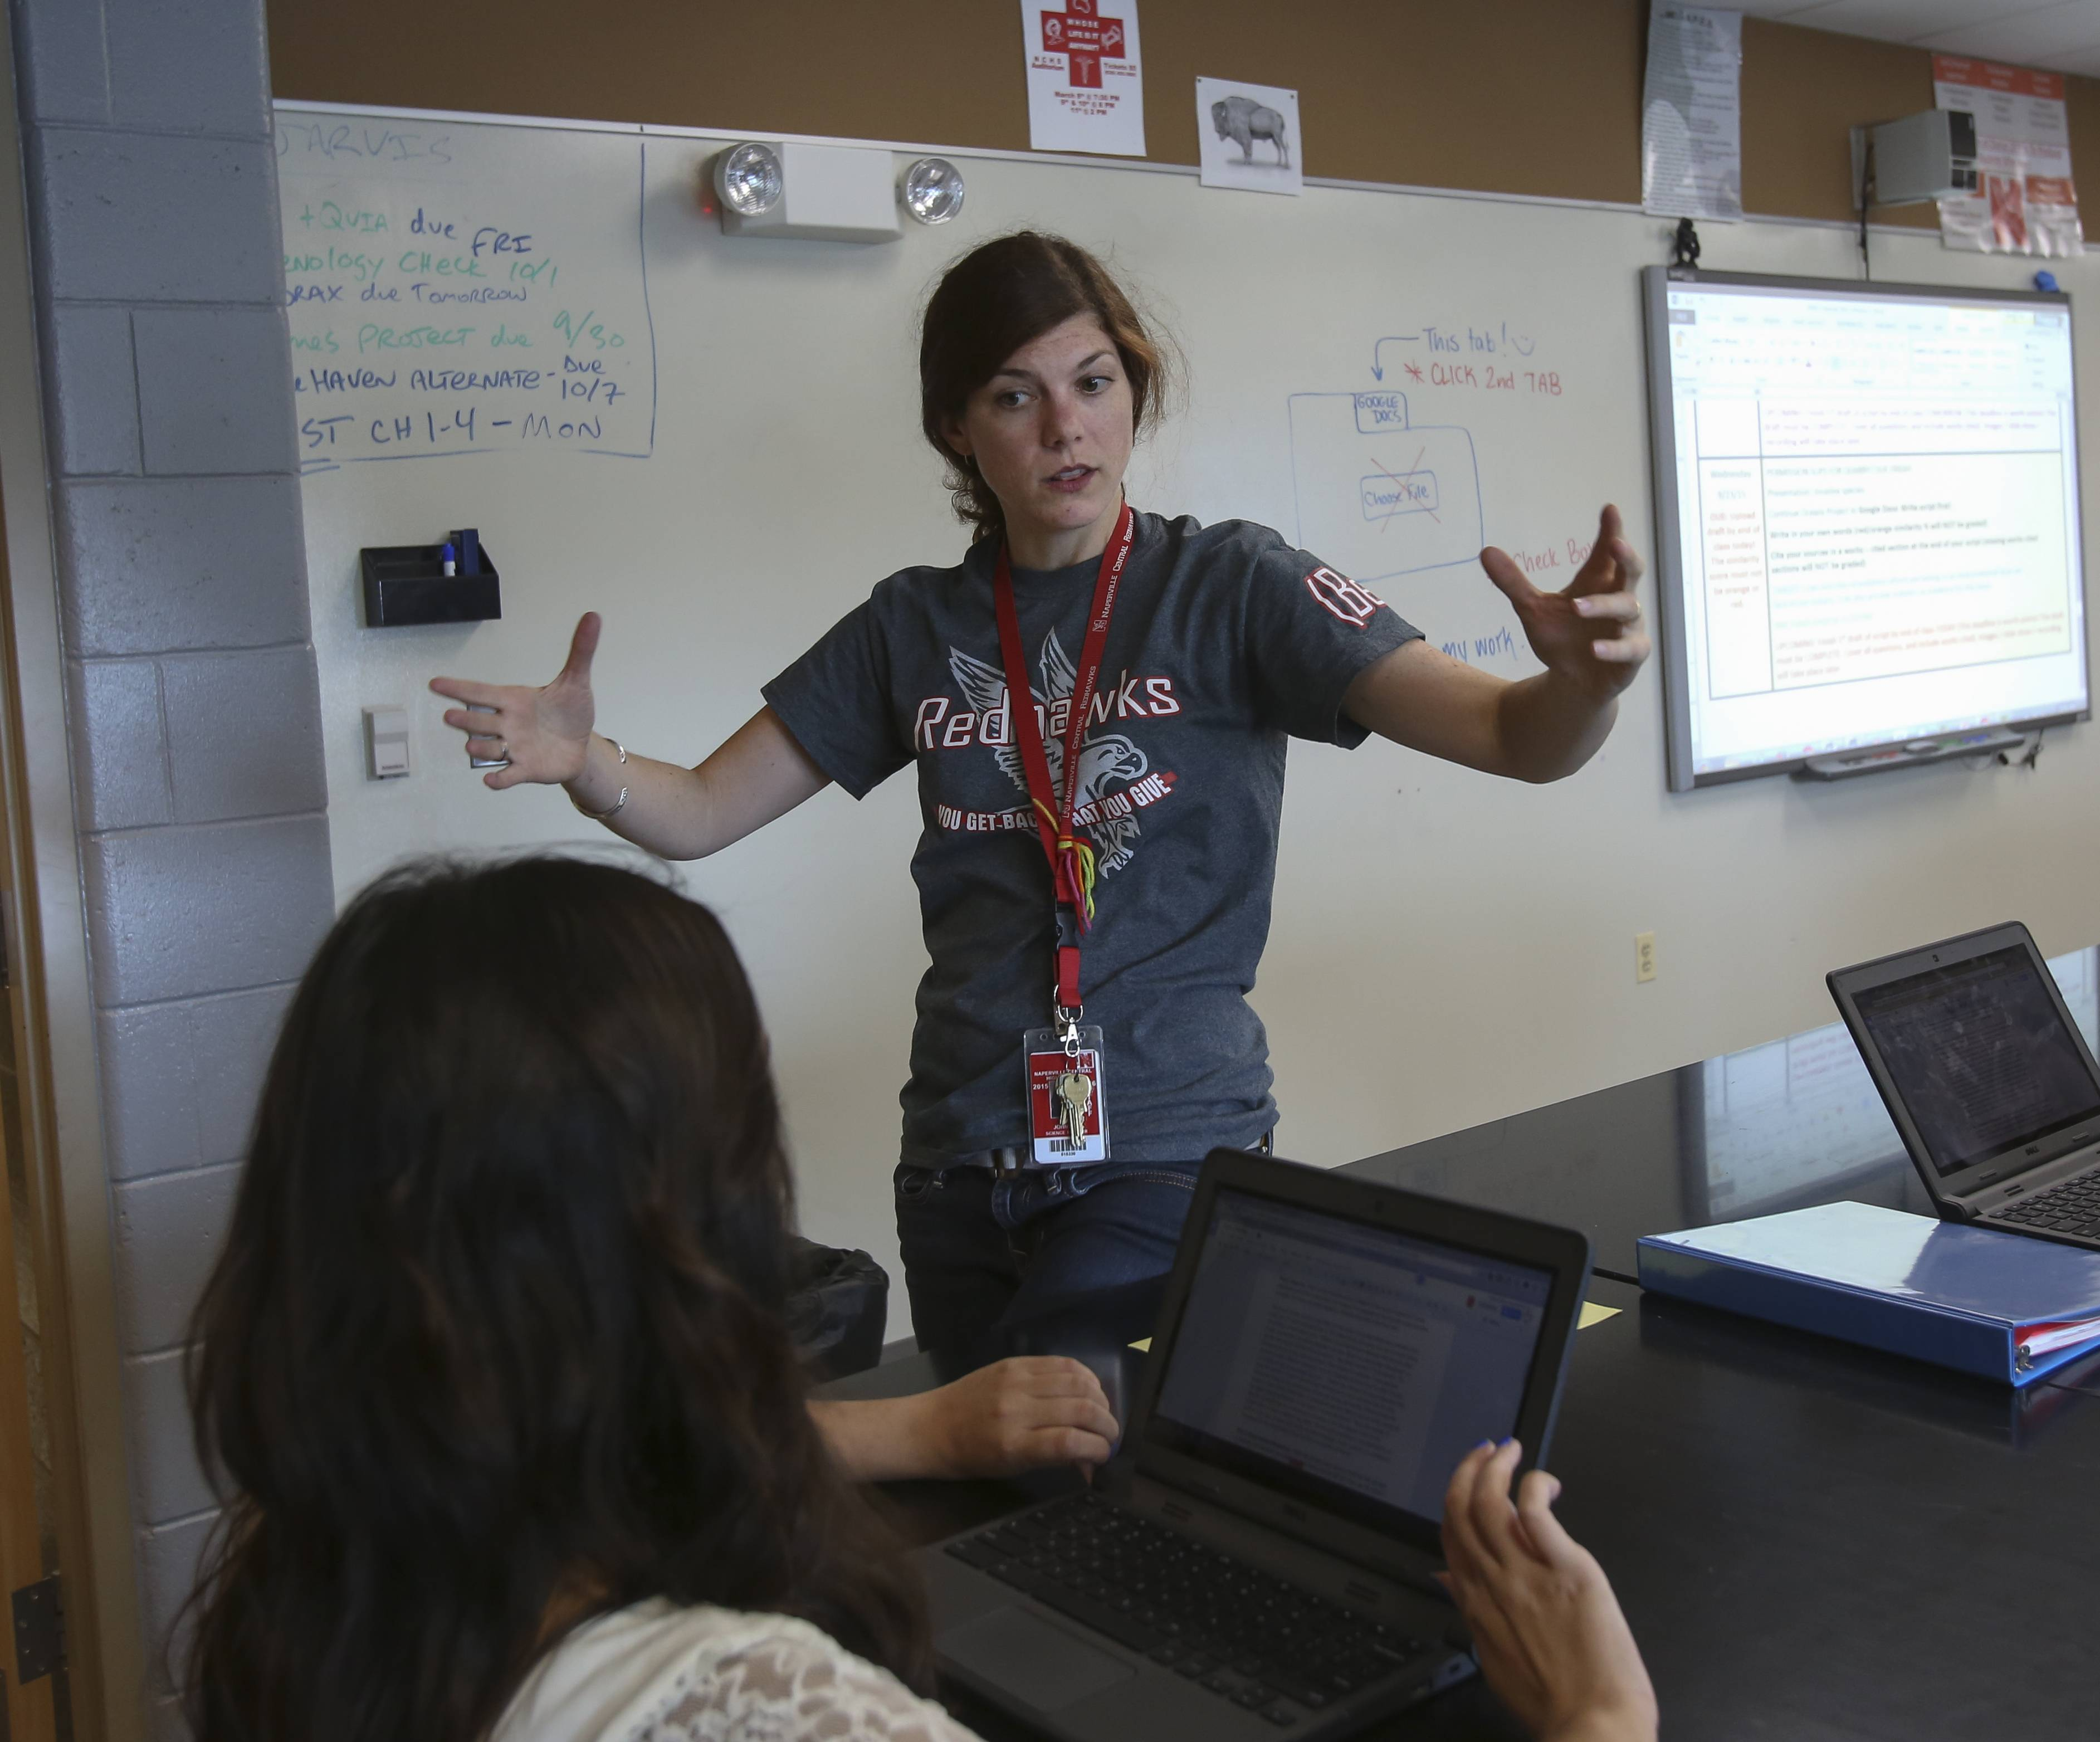 Teaching High School Science - Lawteched